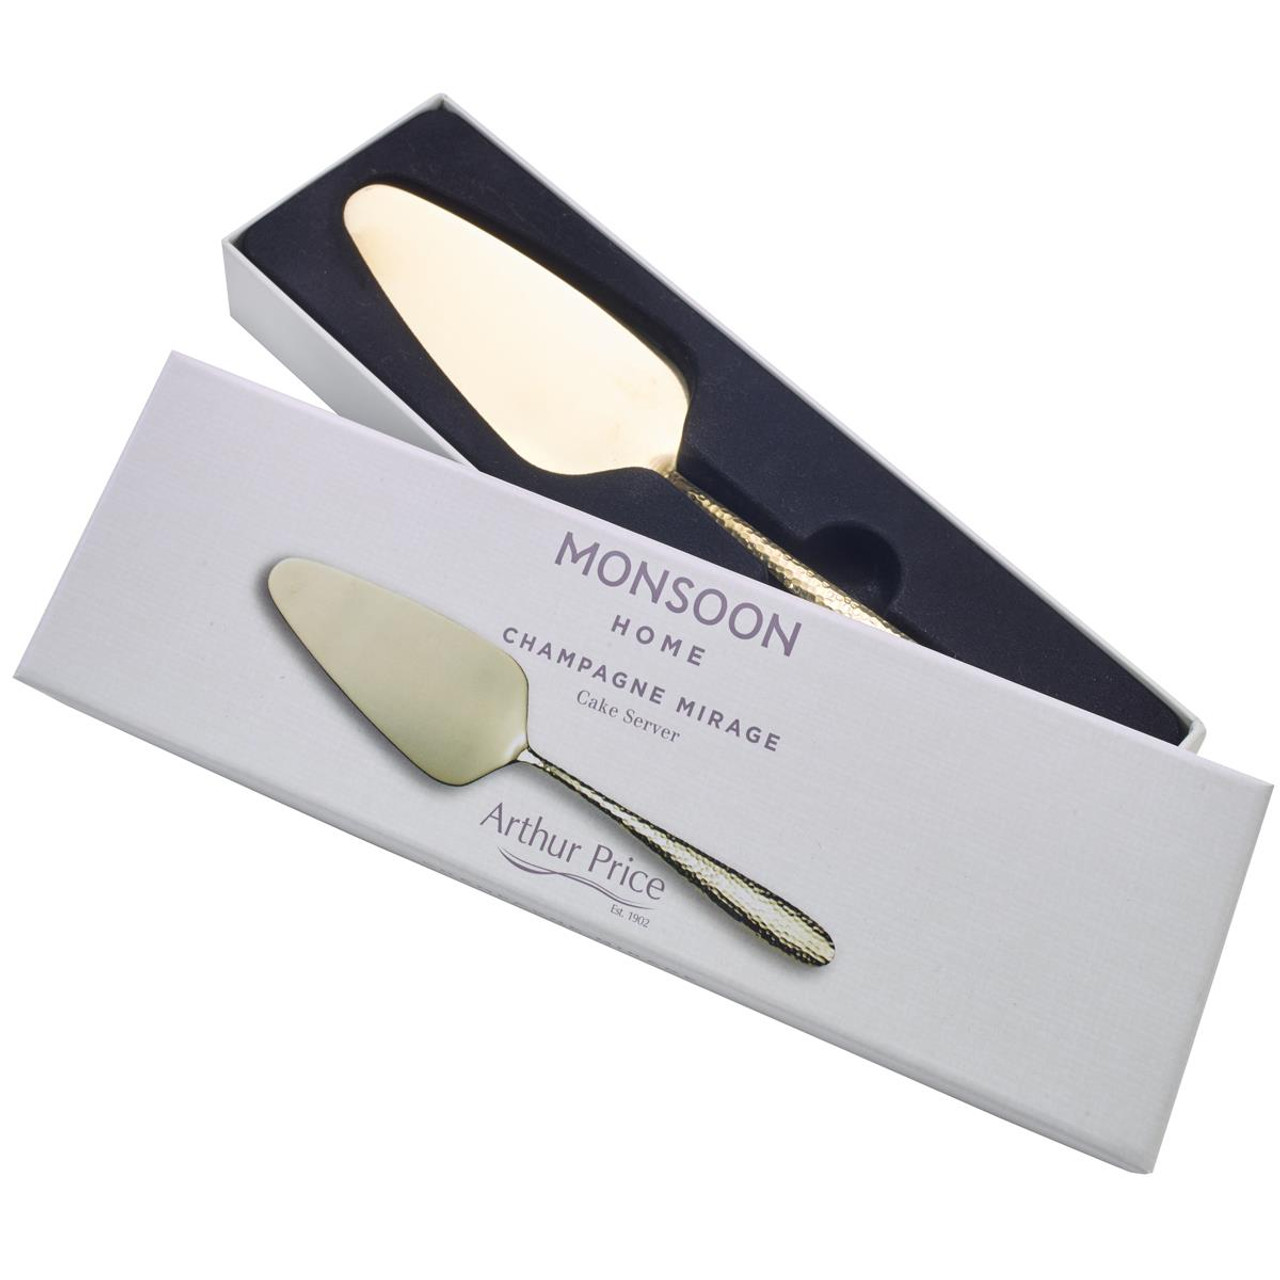 Arthur Price Monsoon Champagne Mirage Cake Slice